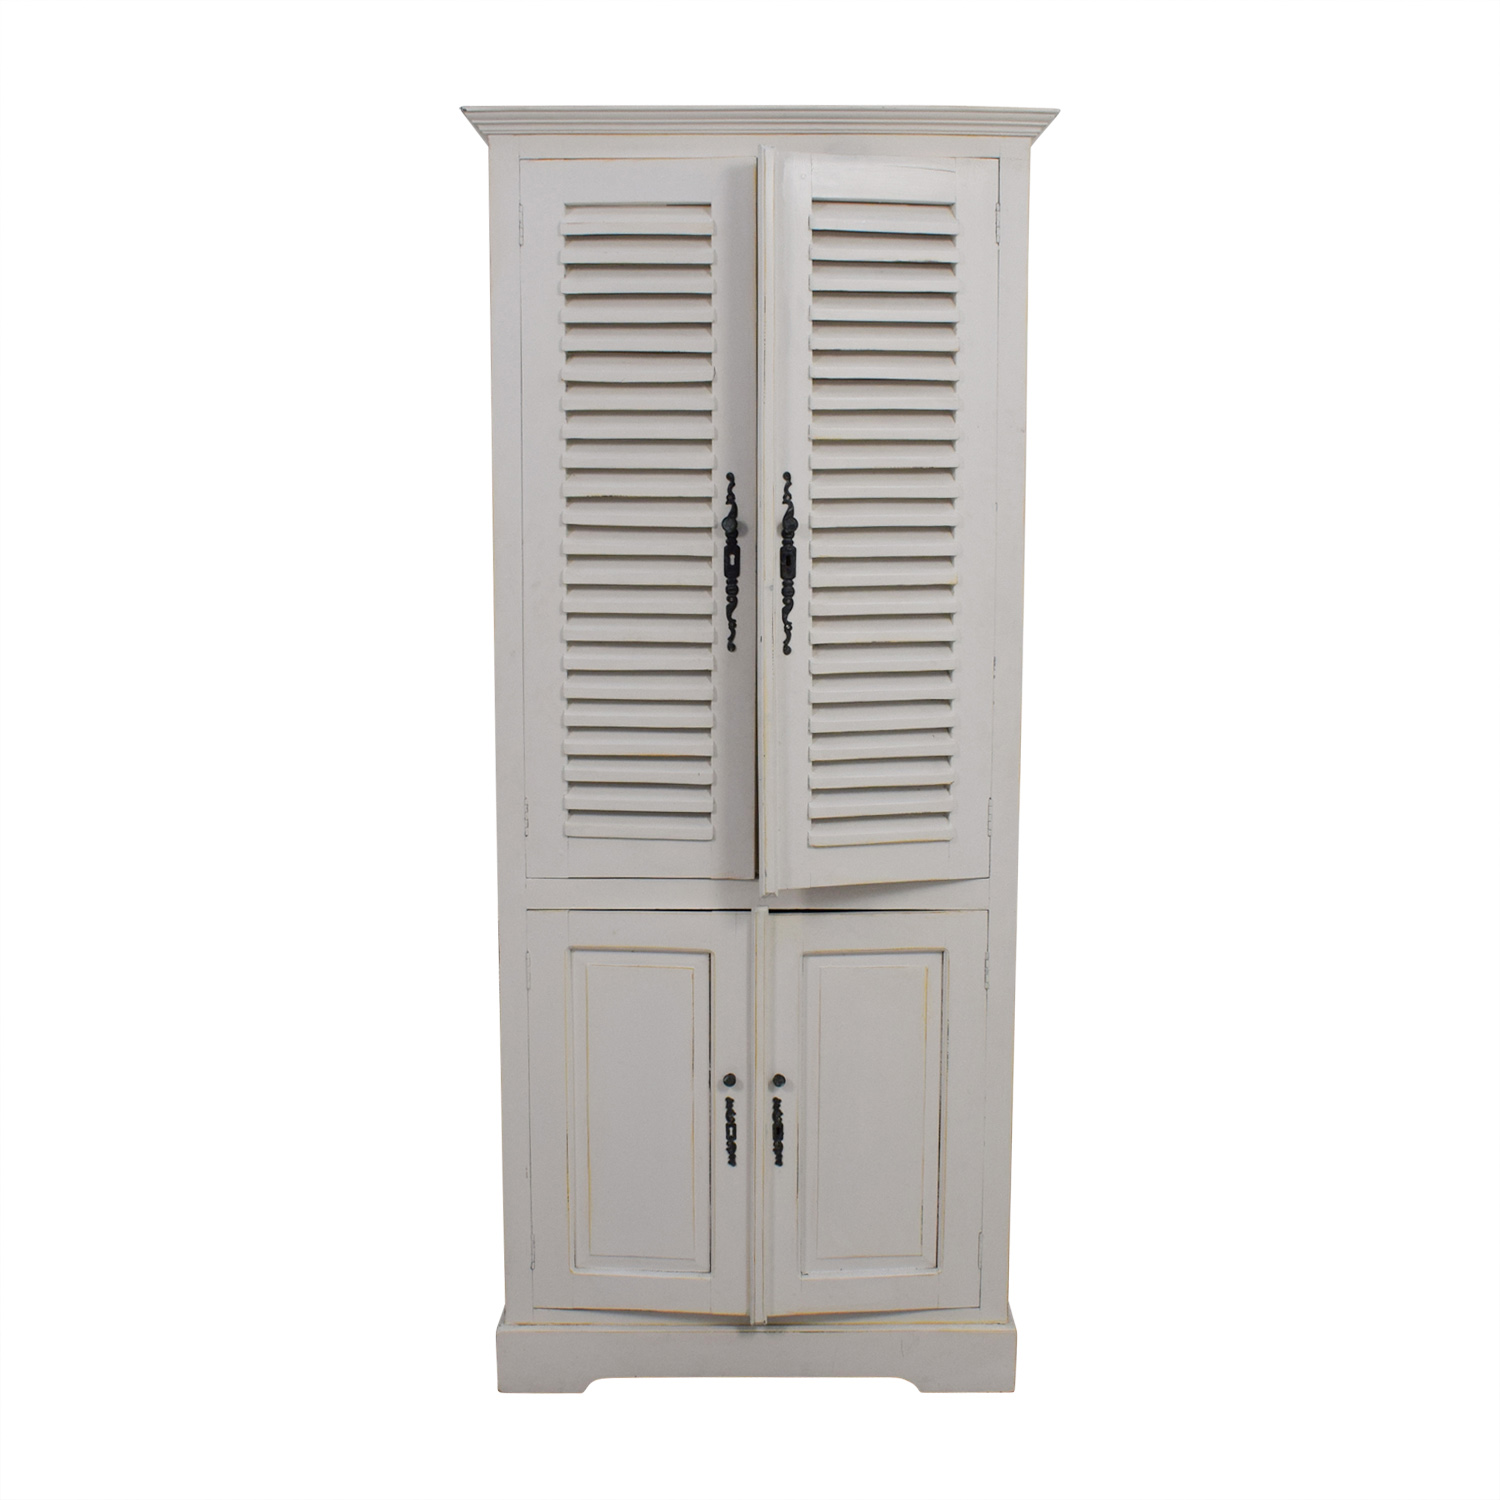 Nadeau Nadeau White Armoire with Keys second hand